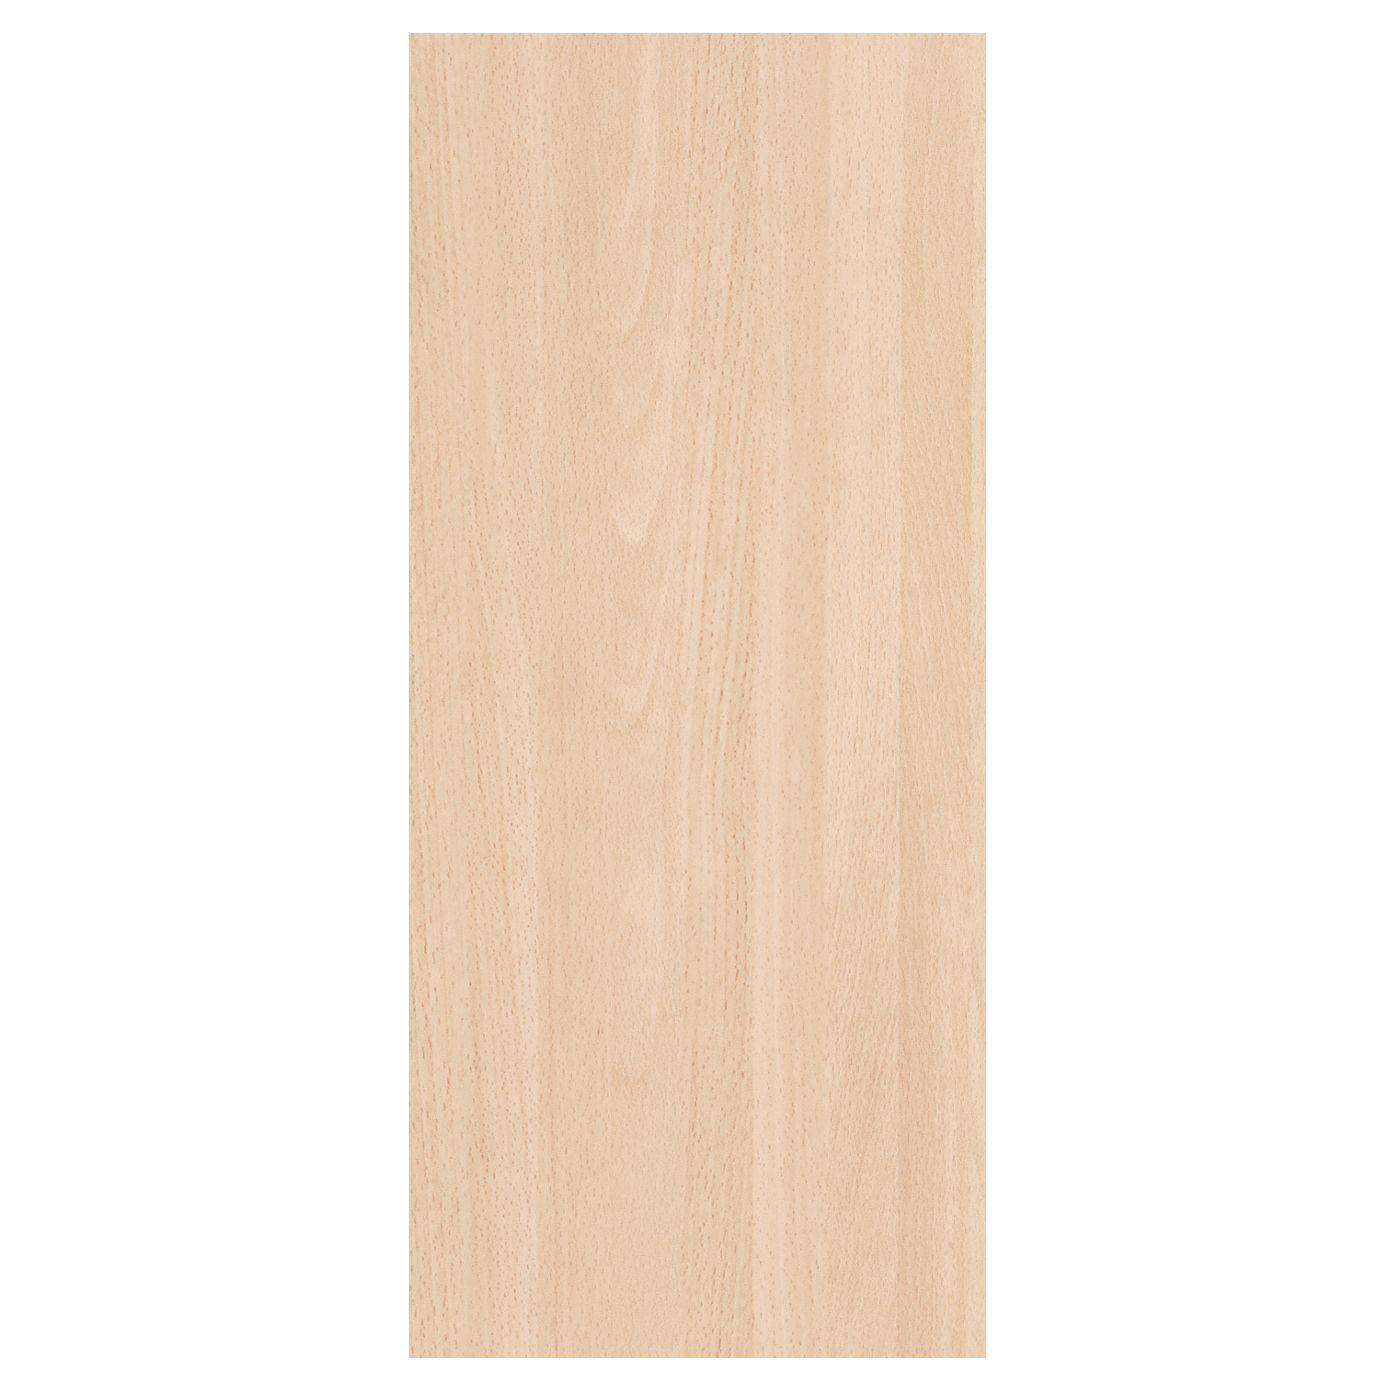 IT Kitchens Beech Effect Wall End Replacement Panel 290 Mm